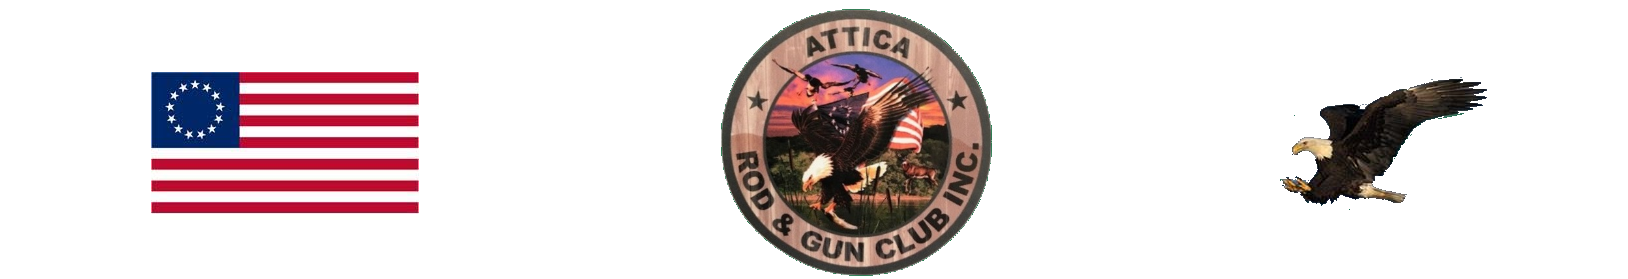 Attica Rod & Gun Club